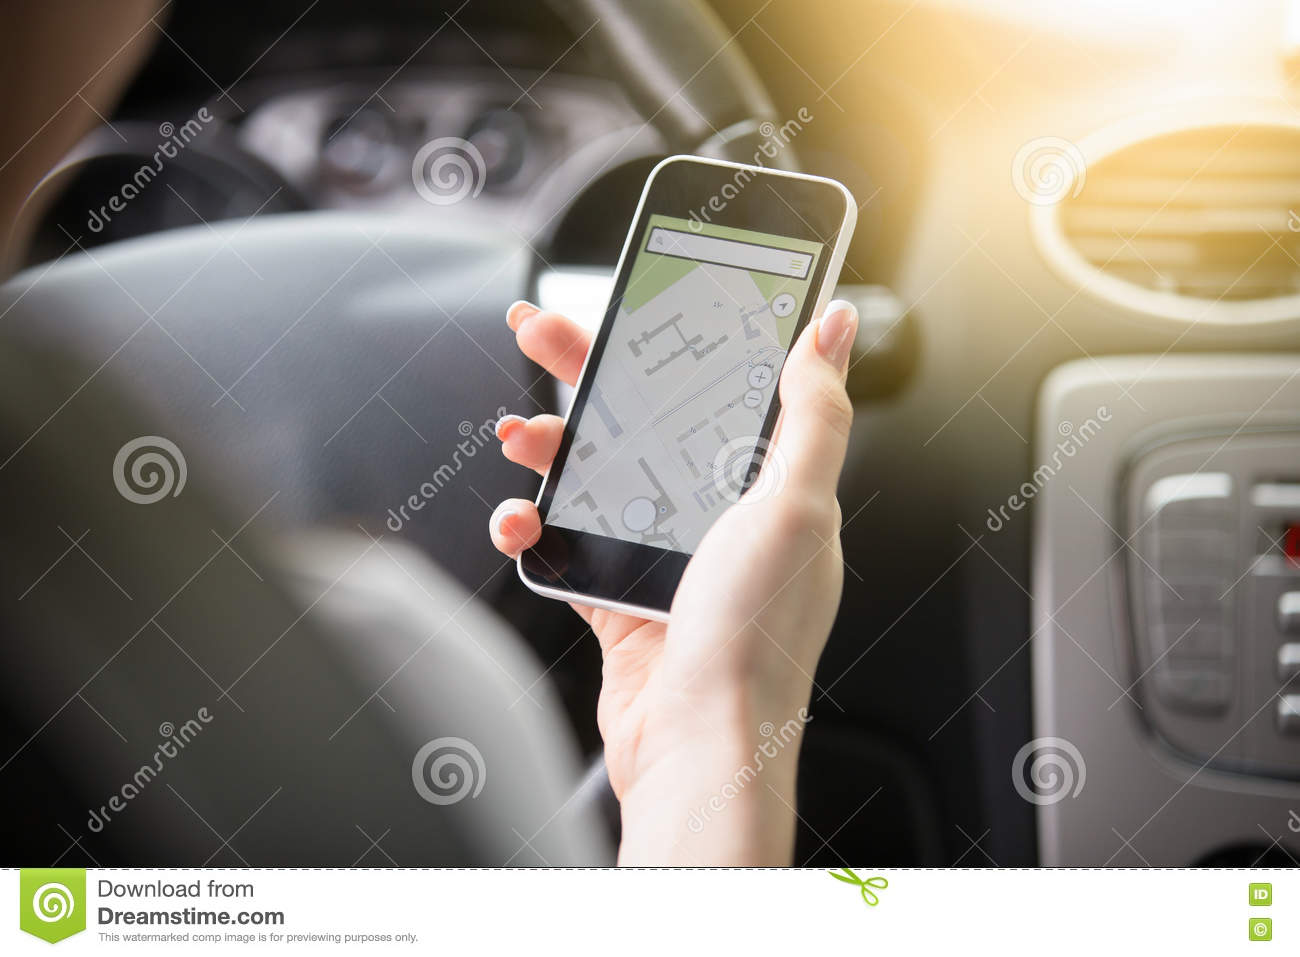 Close-up of female hand holding her phone using navigation syste